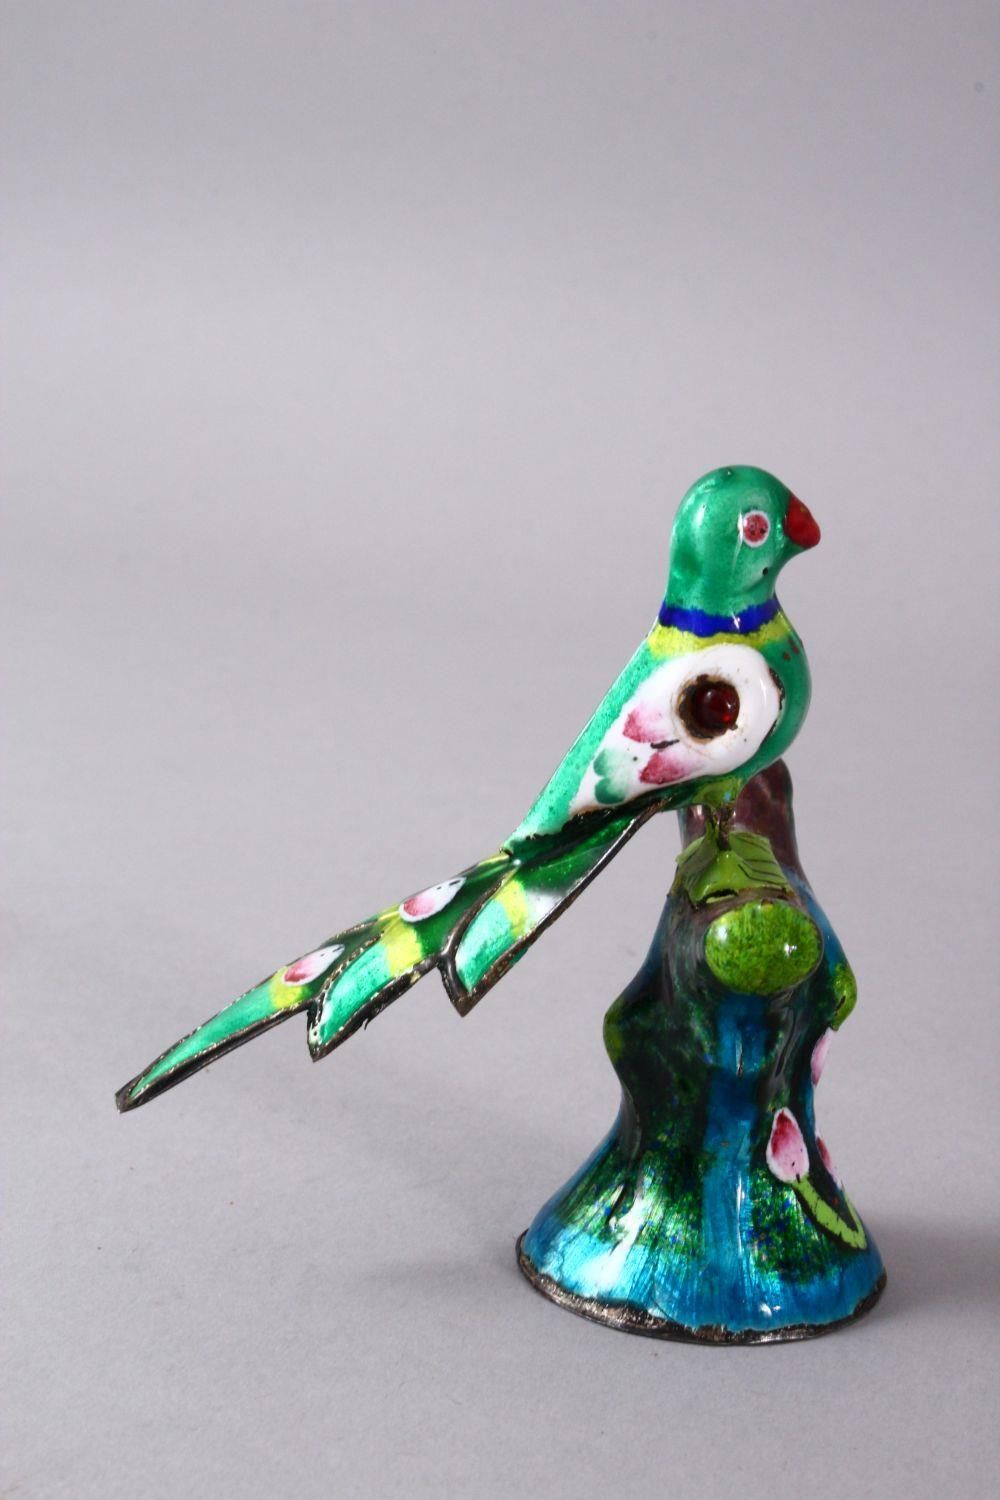 TWO 19TH / 20TH CENTURY INDIAN ENAMEL BIRD FIGURES, one of a peacock, the other of a bird upon - Image 6 of 8